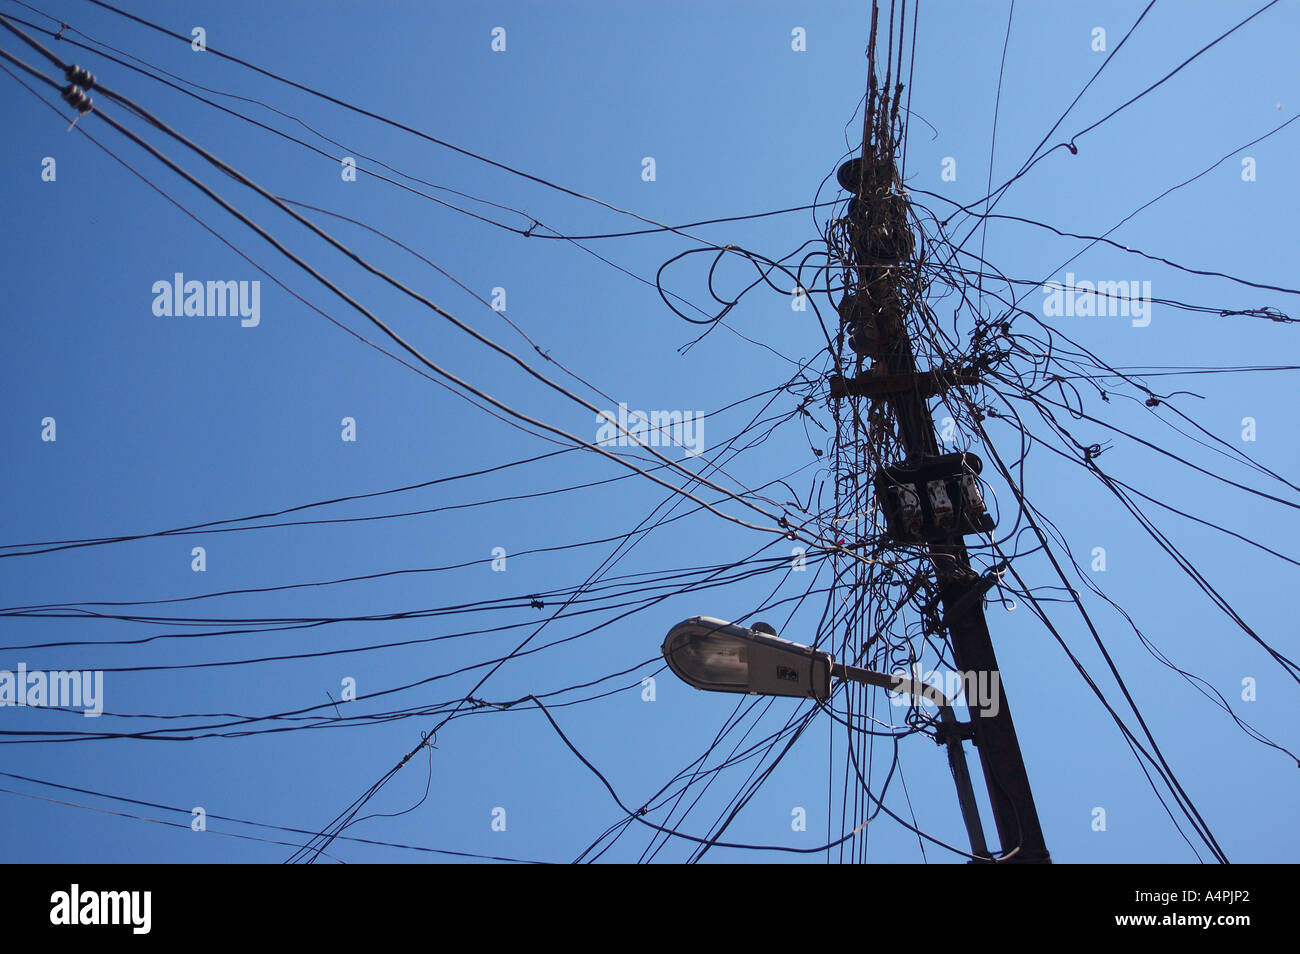 Indian Wiring Stock Photos & Indian Wiring Stock Images - Alamy